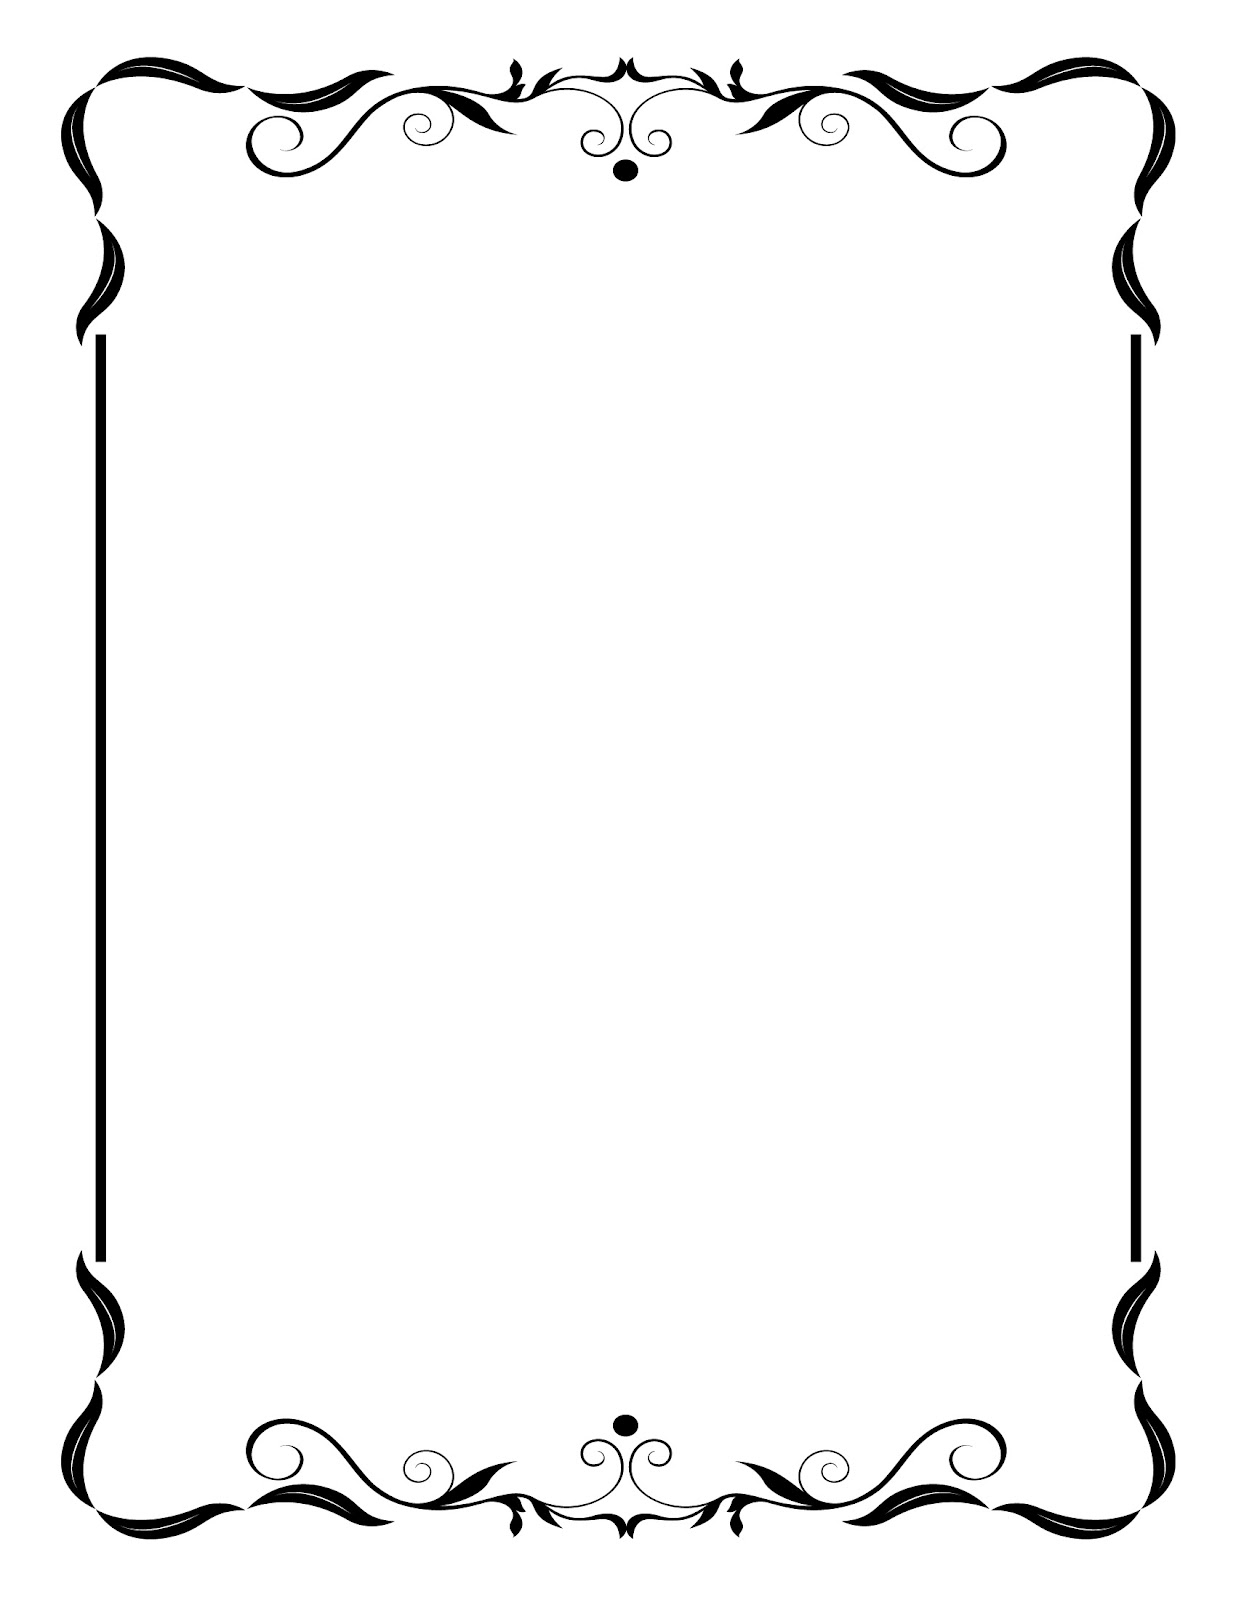 Cards clipart border, Cards border Transparent FREE for.